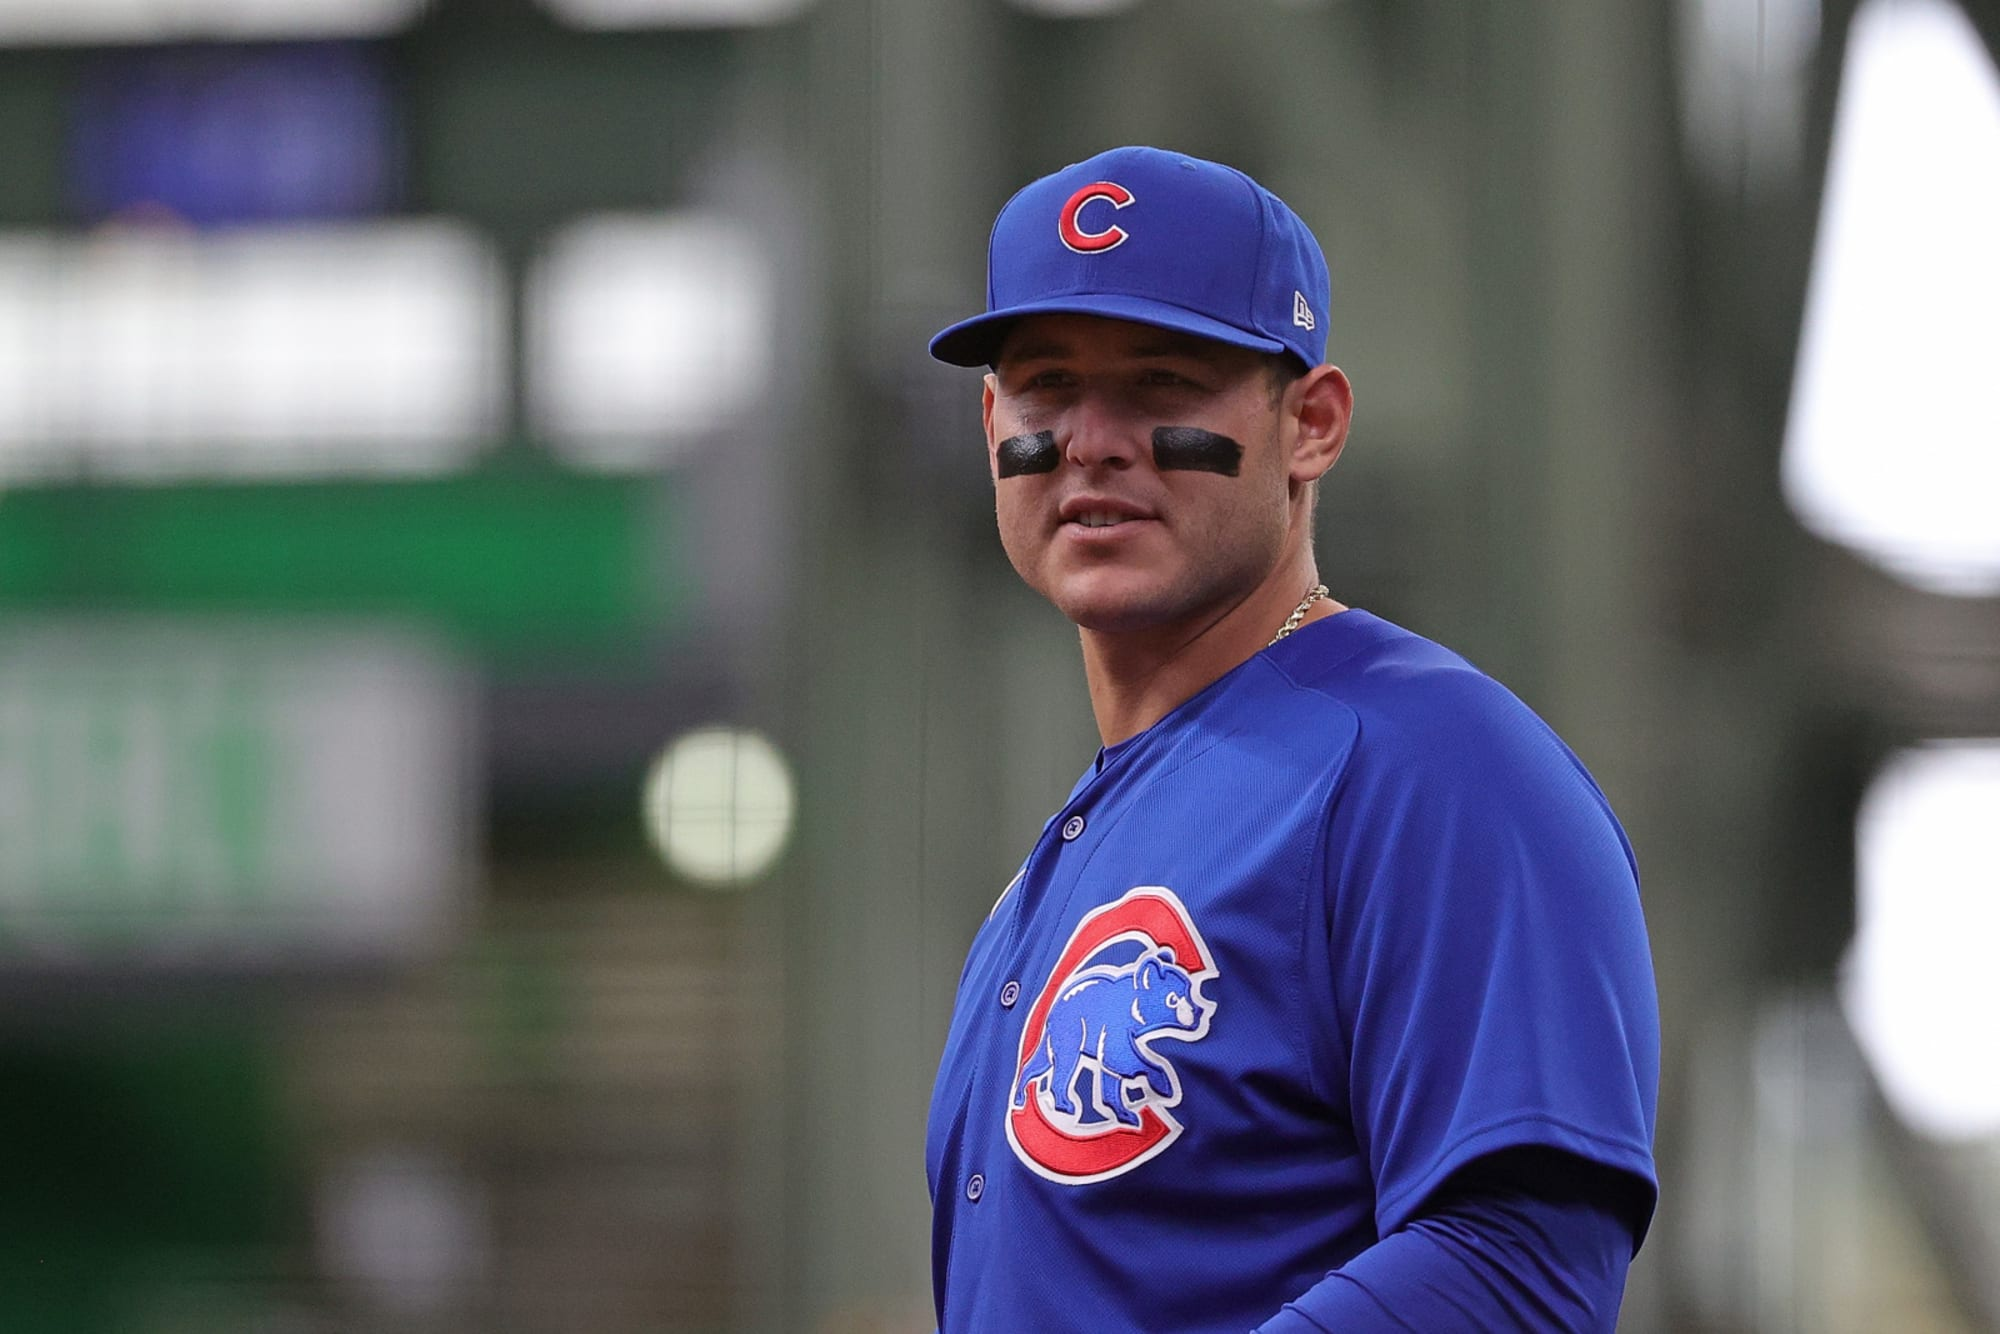 Could the Chicago Cubs be no-hit during this 2021 season?